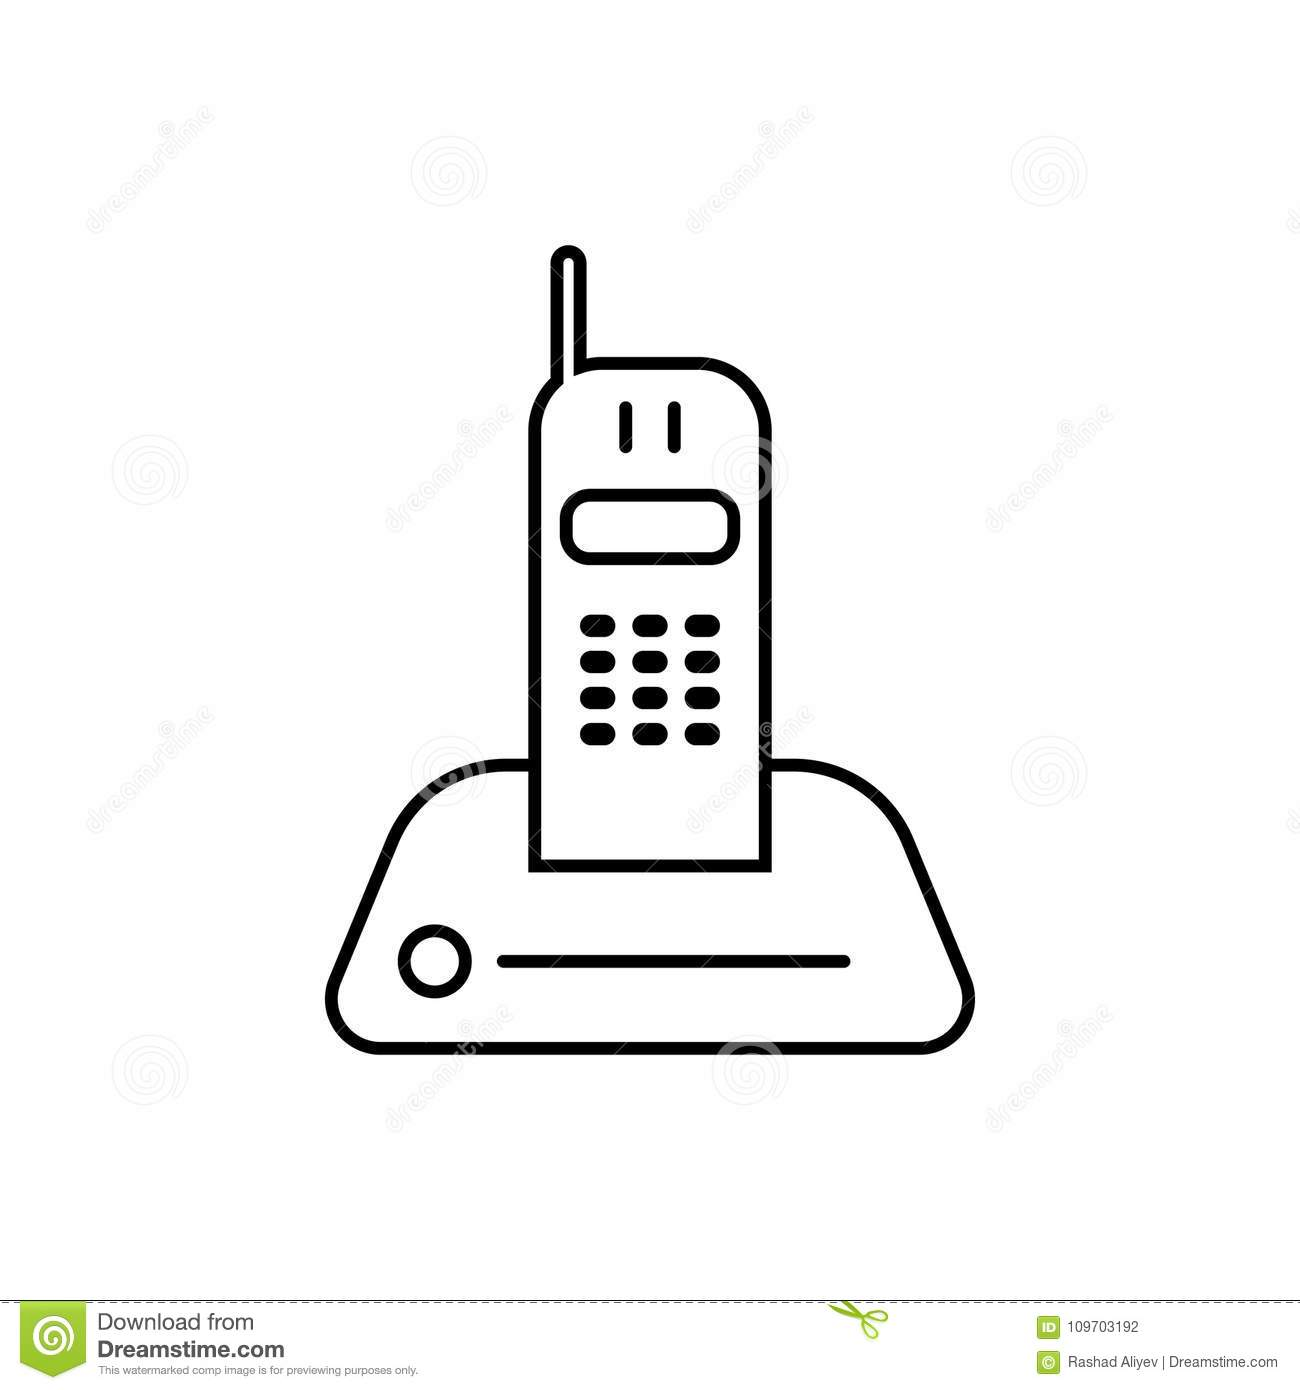 radio telephone icon. Element of home appliances for mobile concept and web apps. Thin line icon for website design and developmen